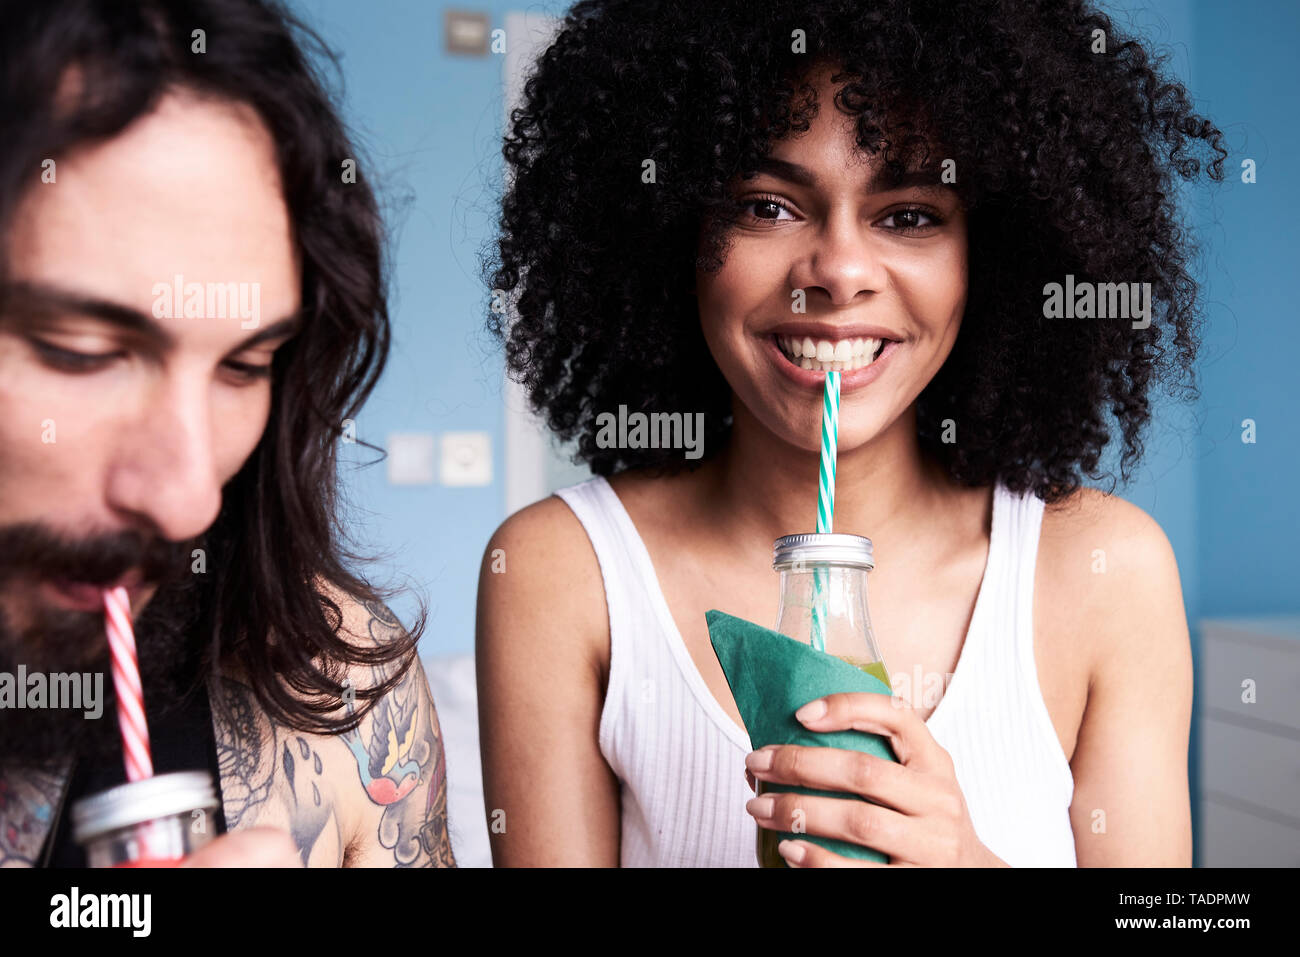 Portrait of smiling young woman with boyfriend drinking smoothie - Stock Image